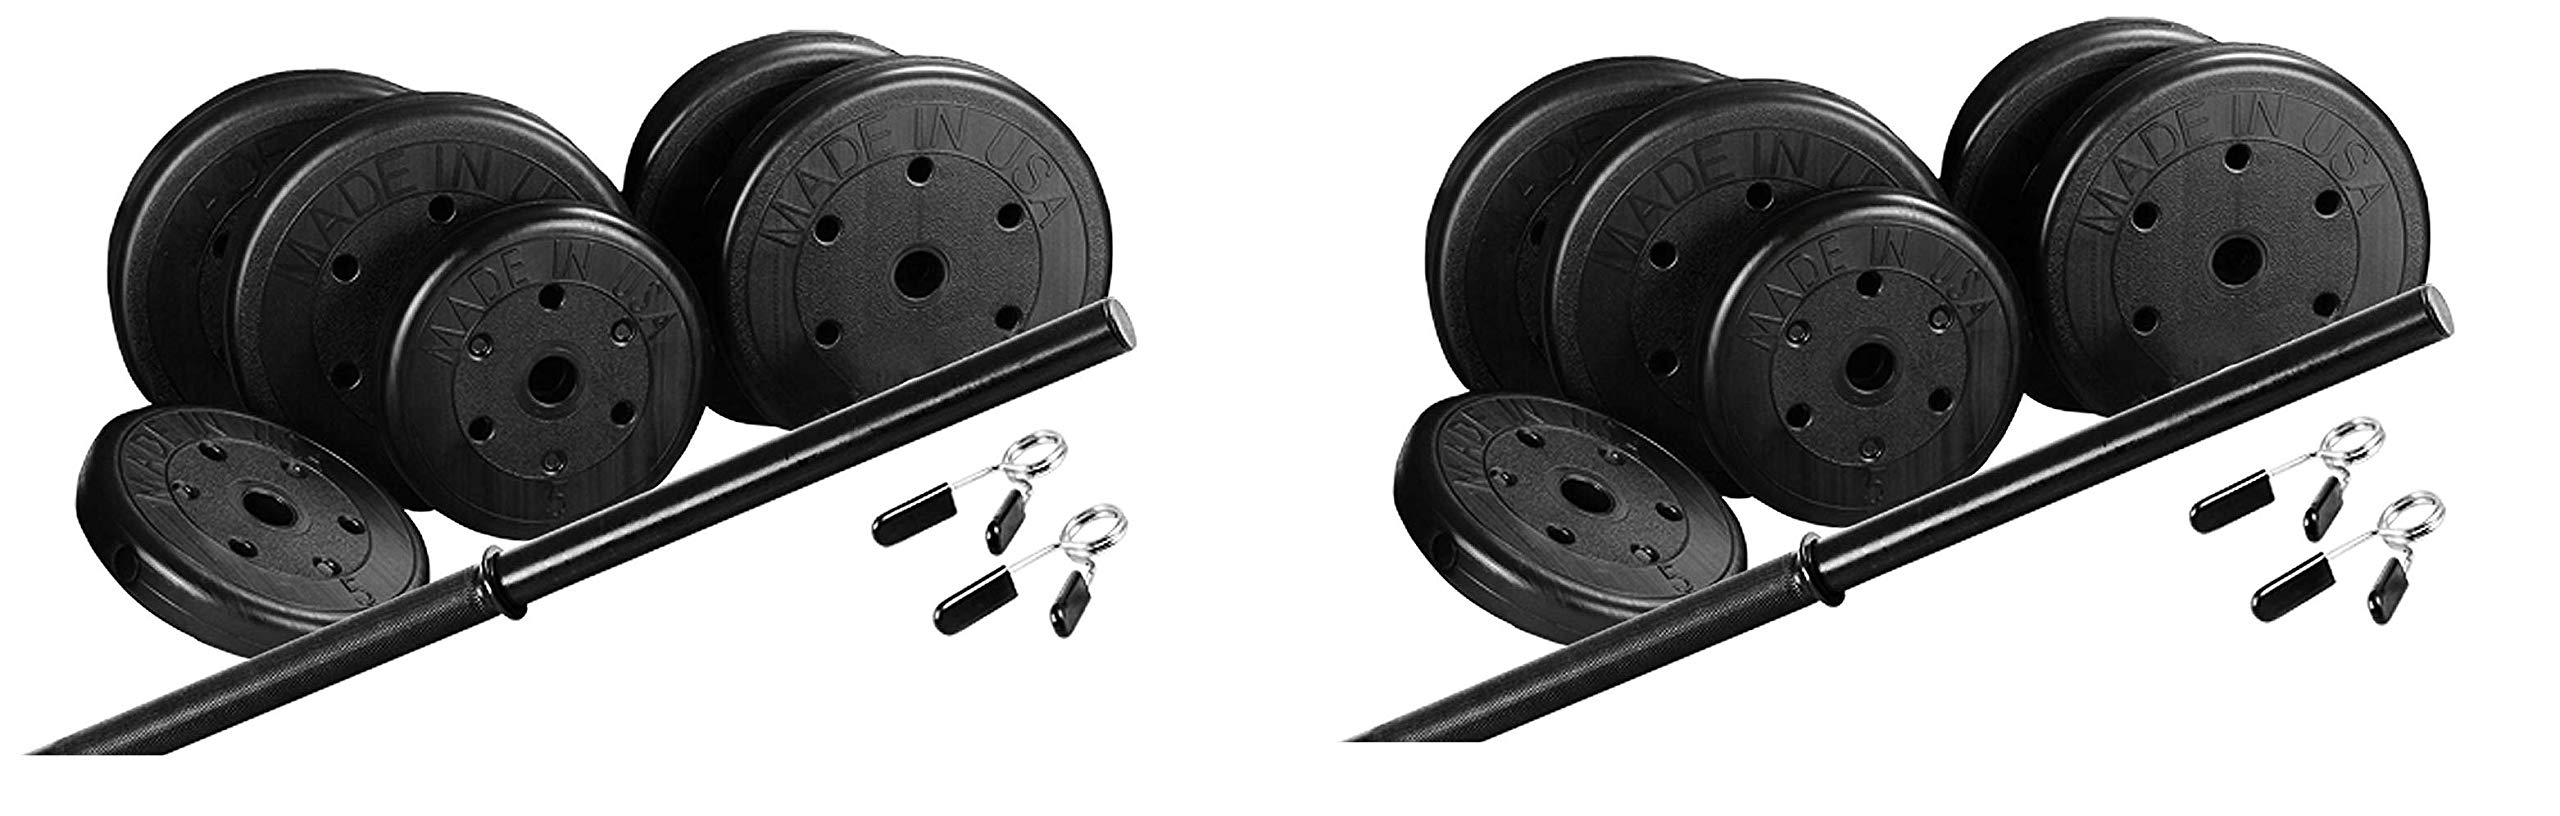 US Weight Duracast 55 lb. Barbell Weight Set with Two 5 lb. Weights, Four 10 lb. Weights, One 4 lb. Two-Piece Threaded Barbell Bar, Two Locking Spring Clips (Twо Расk)